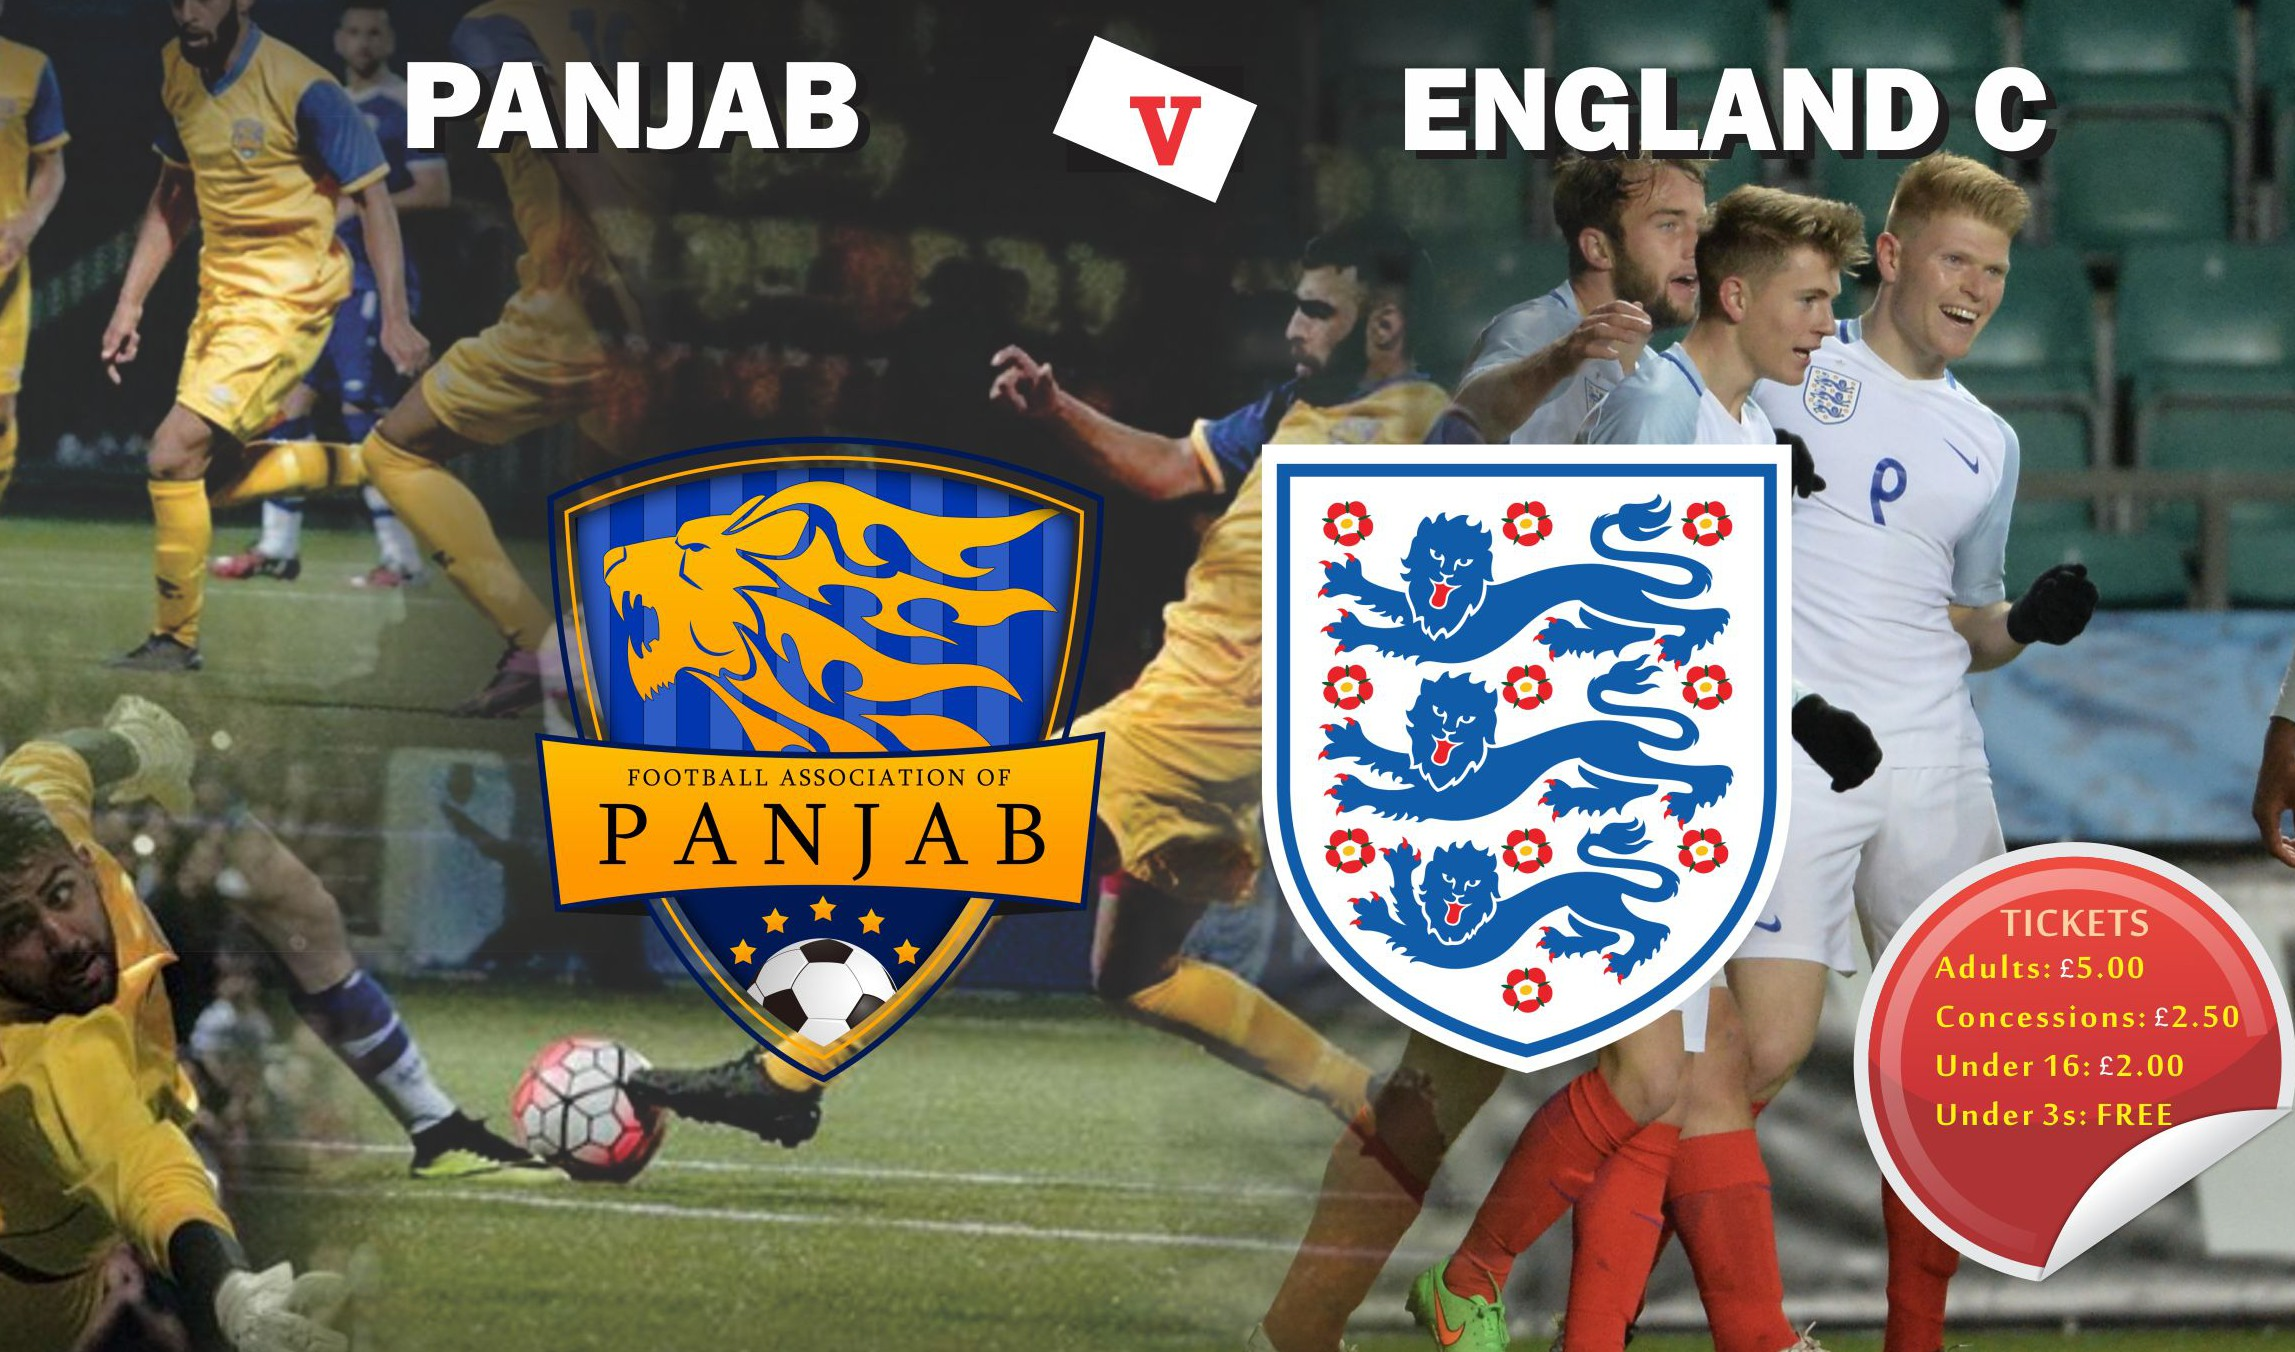 PANJAB TO PLAY ENGLAND C